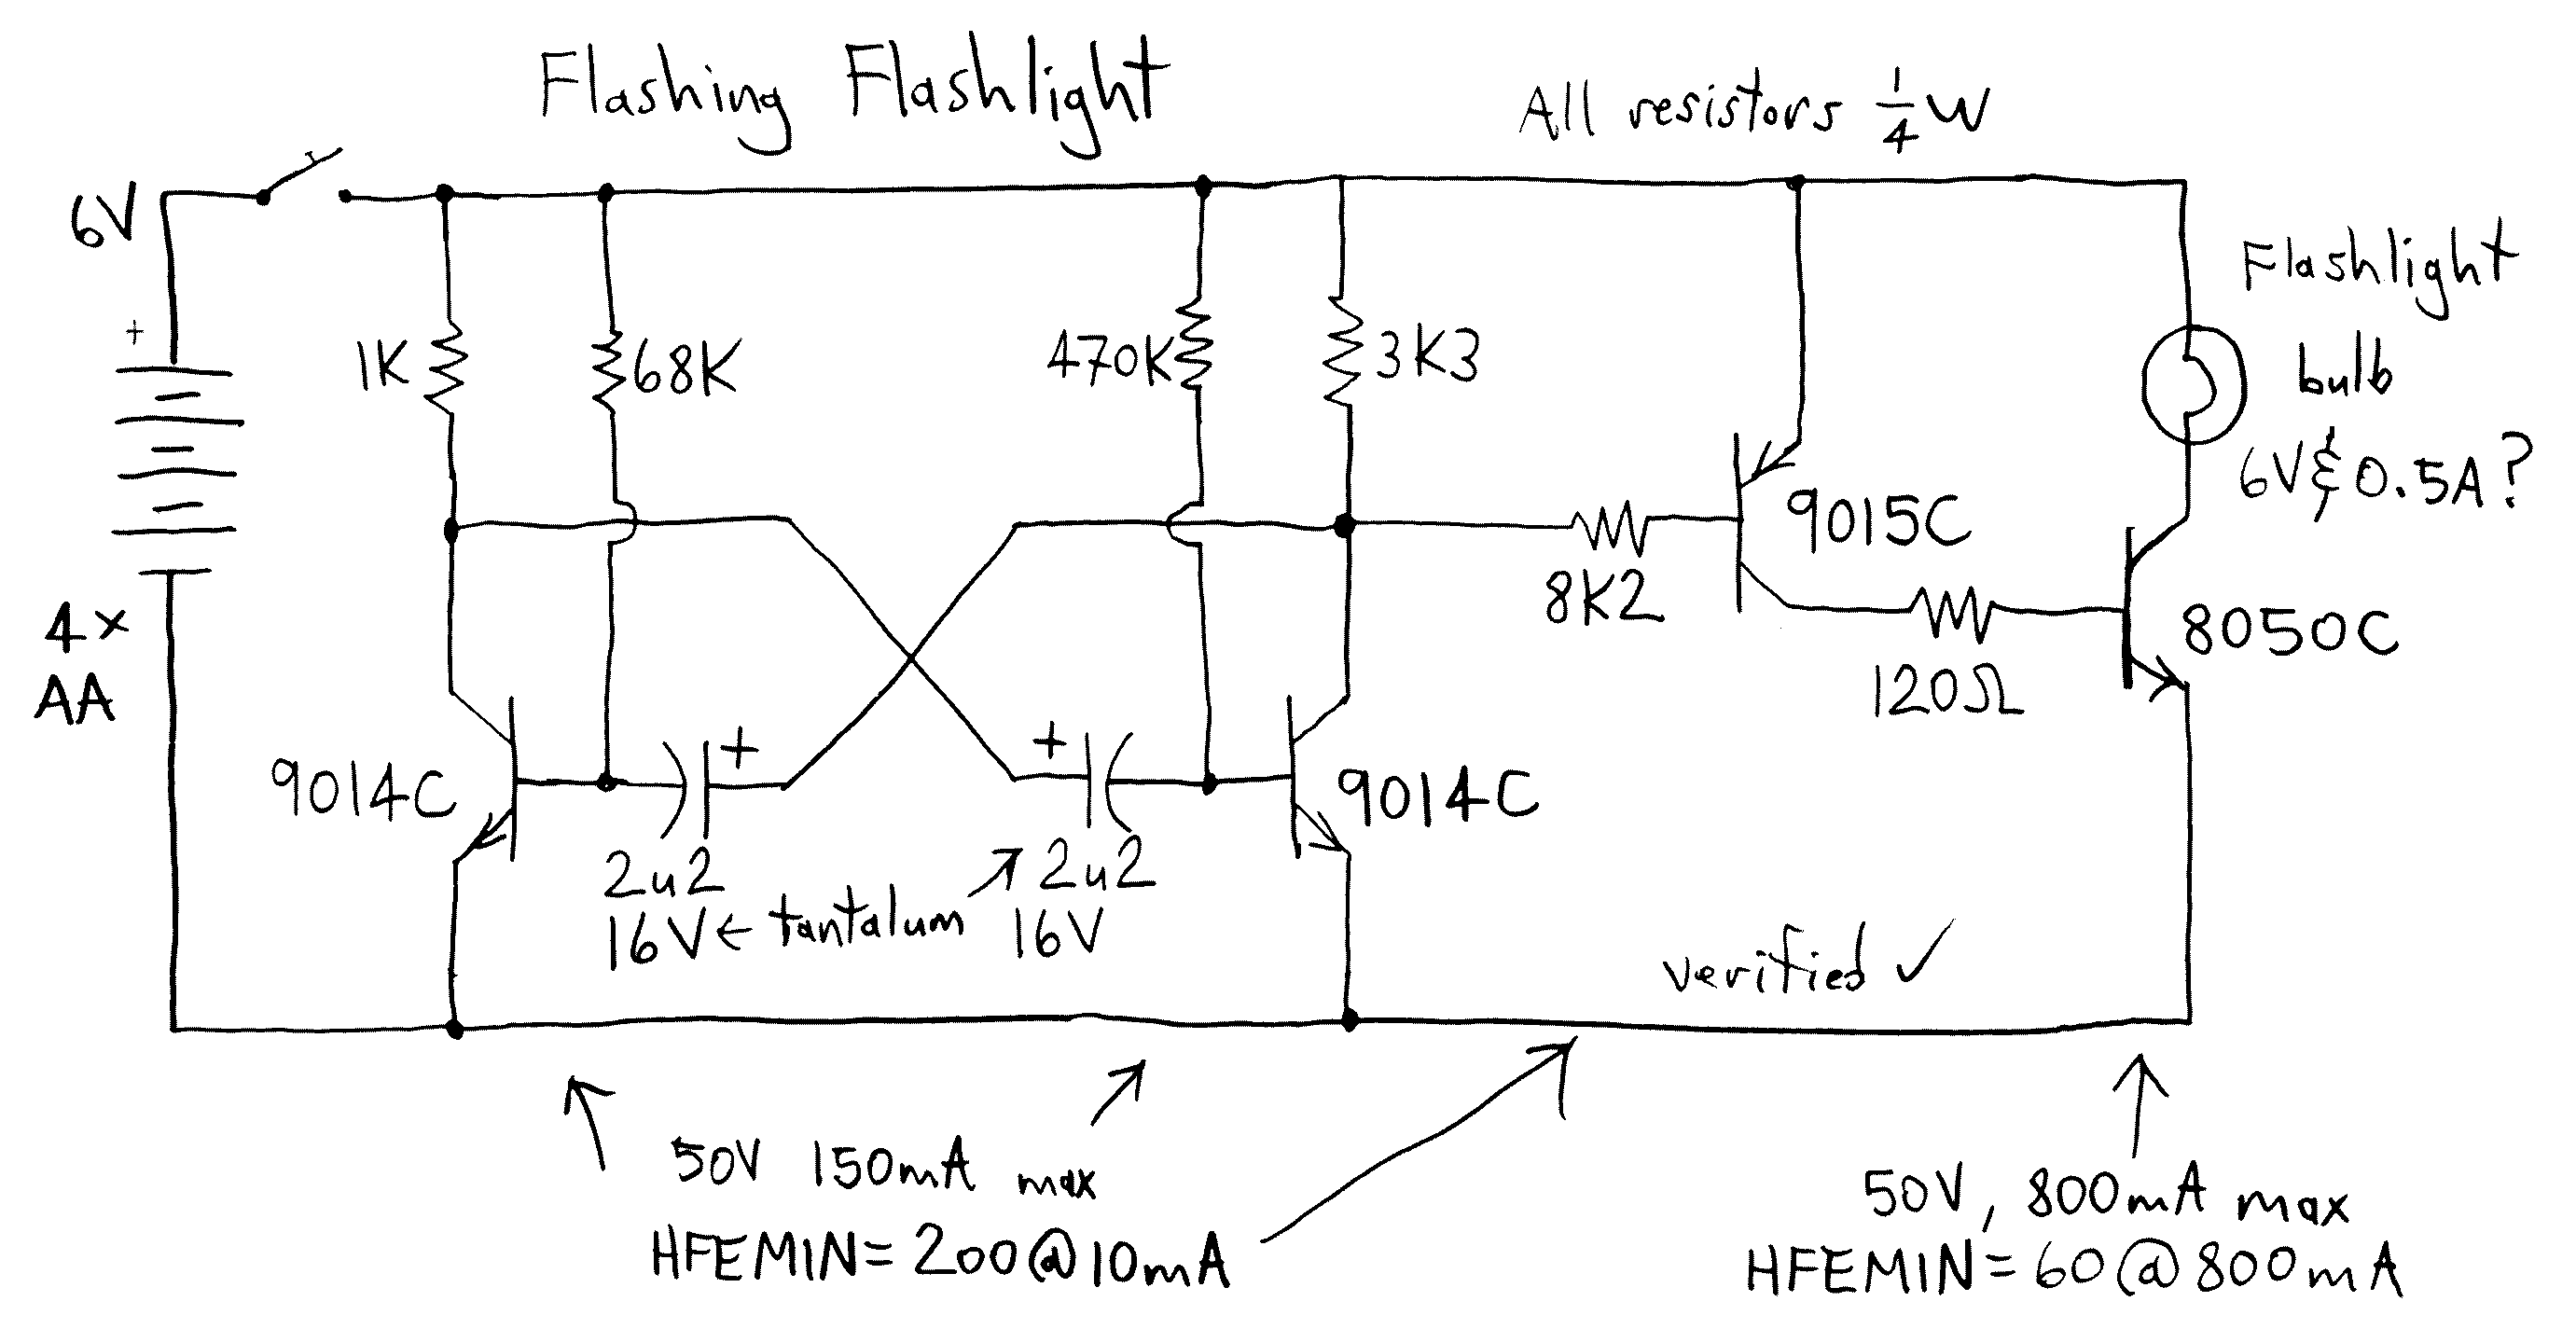 Flashing Flashlight - schematic